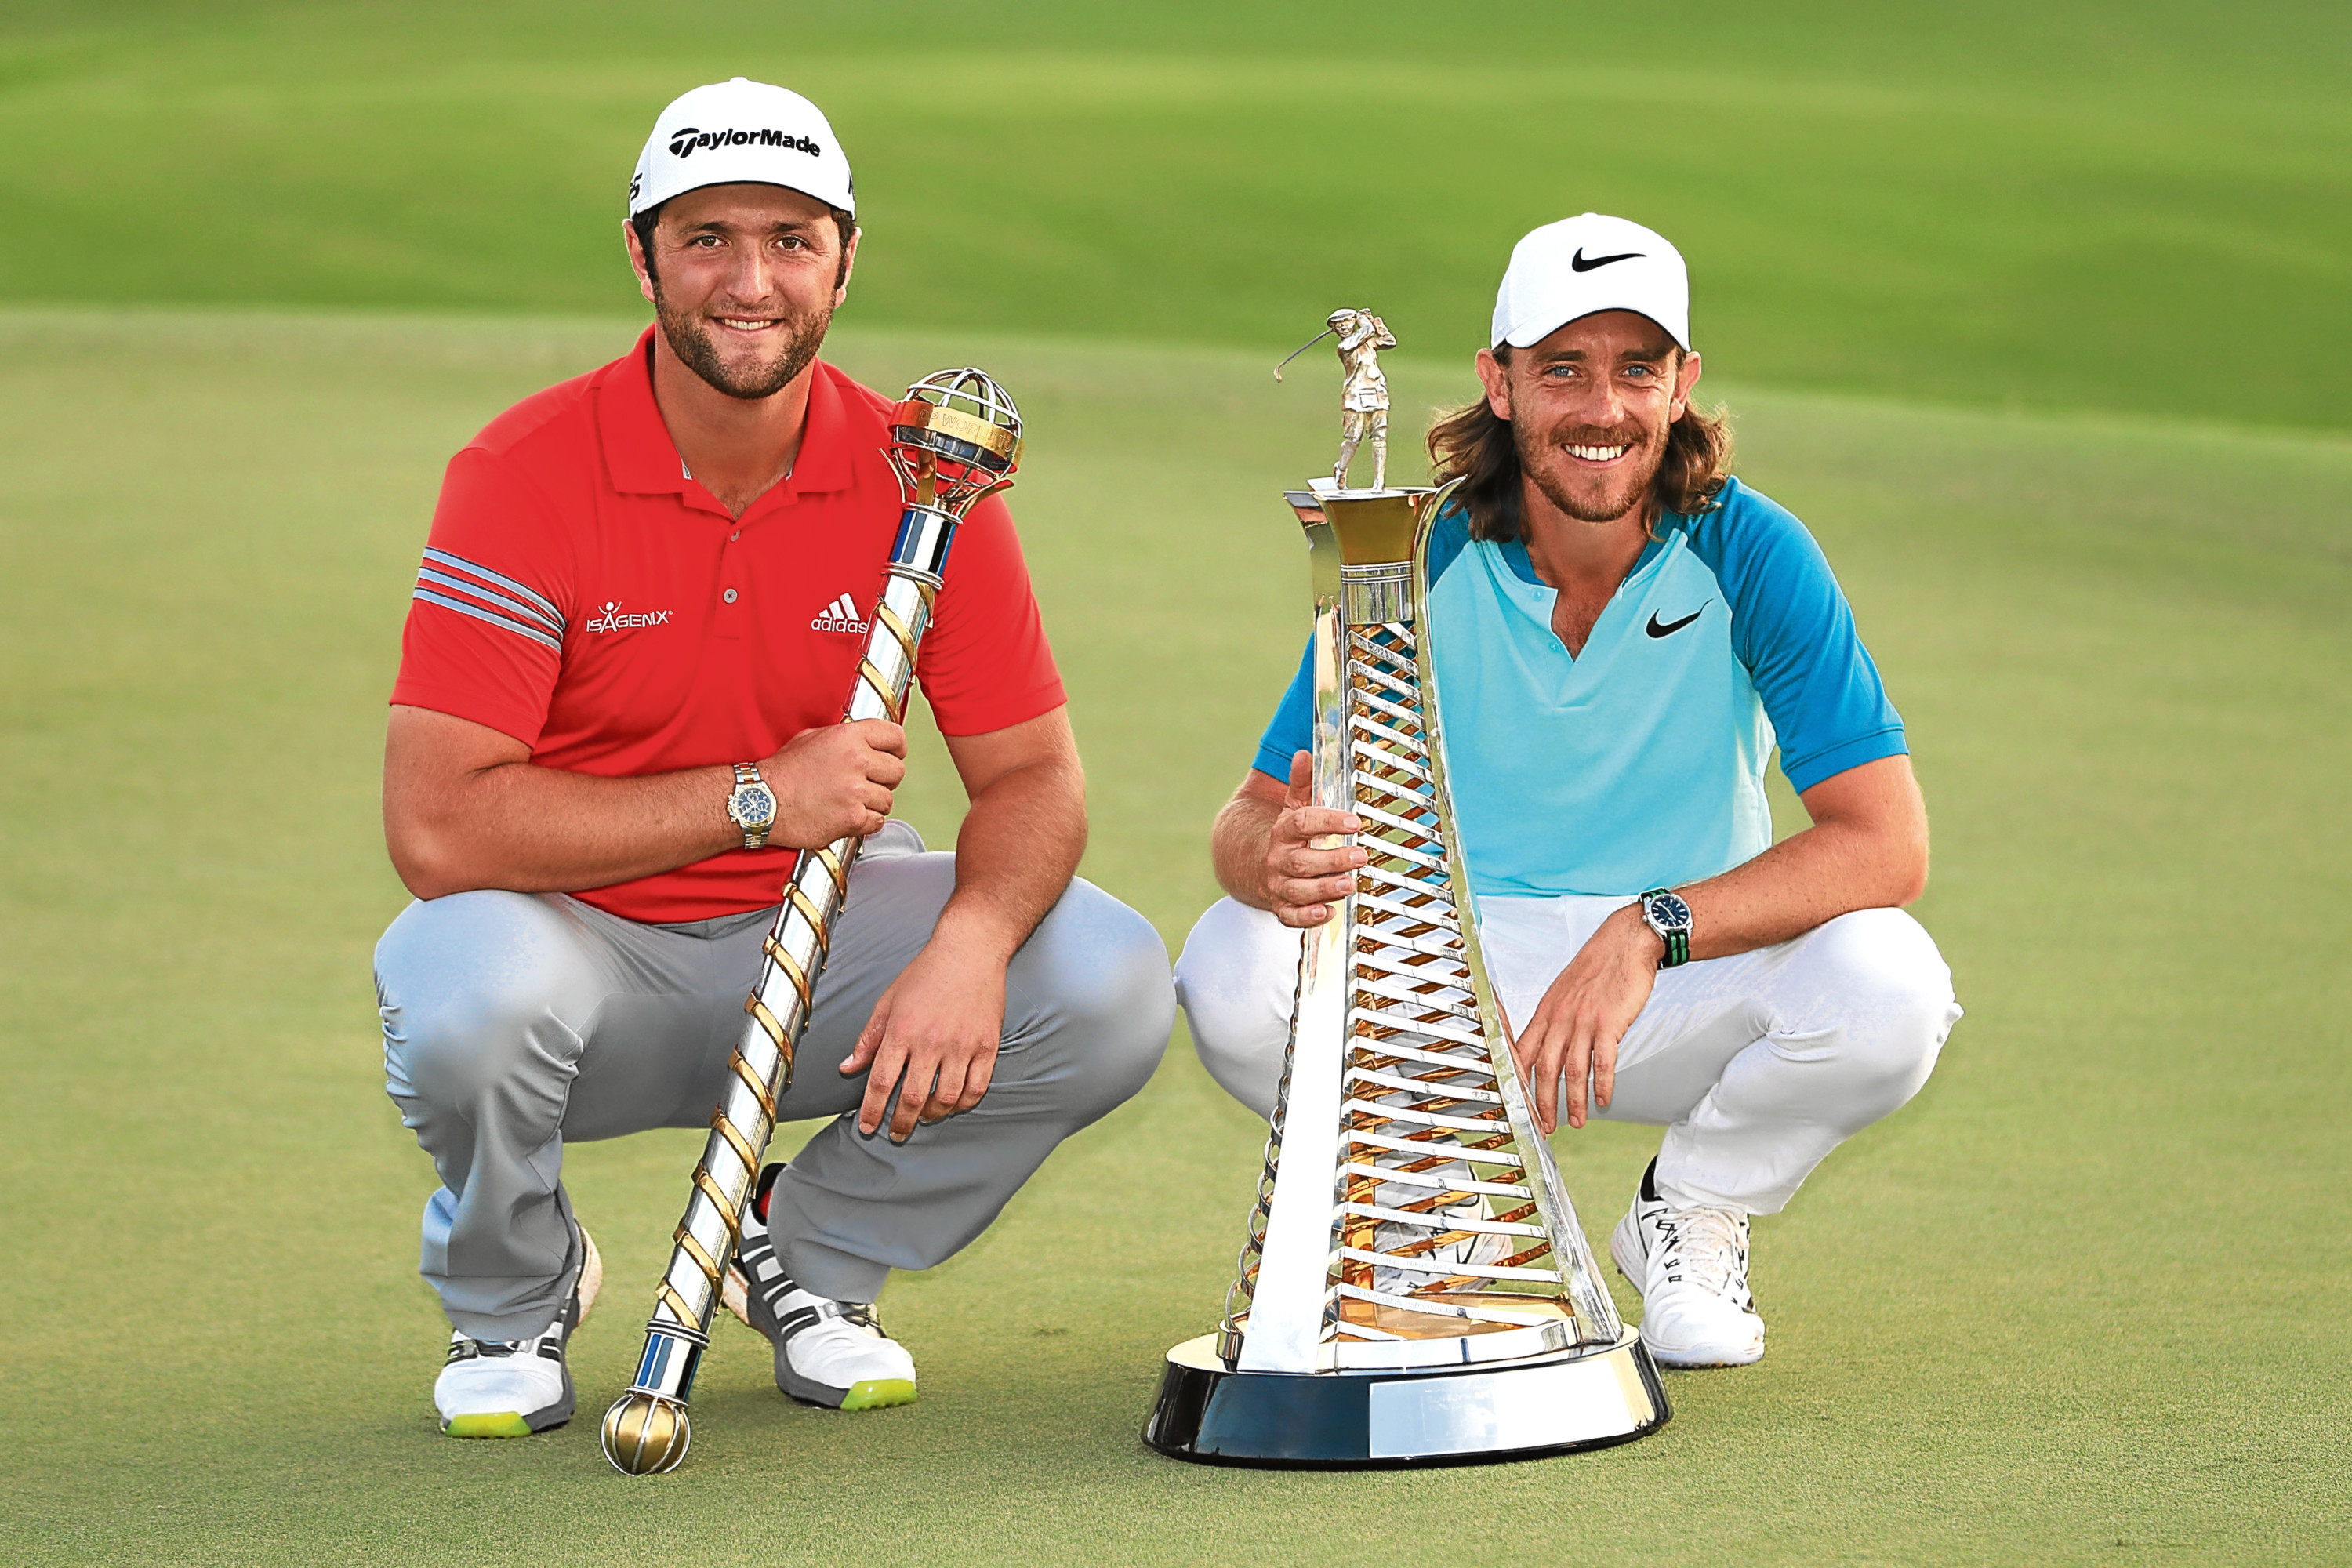 Jon Rahm and Tommy Fleetwood (l) will be formidable Ryder Cup rookies.